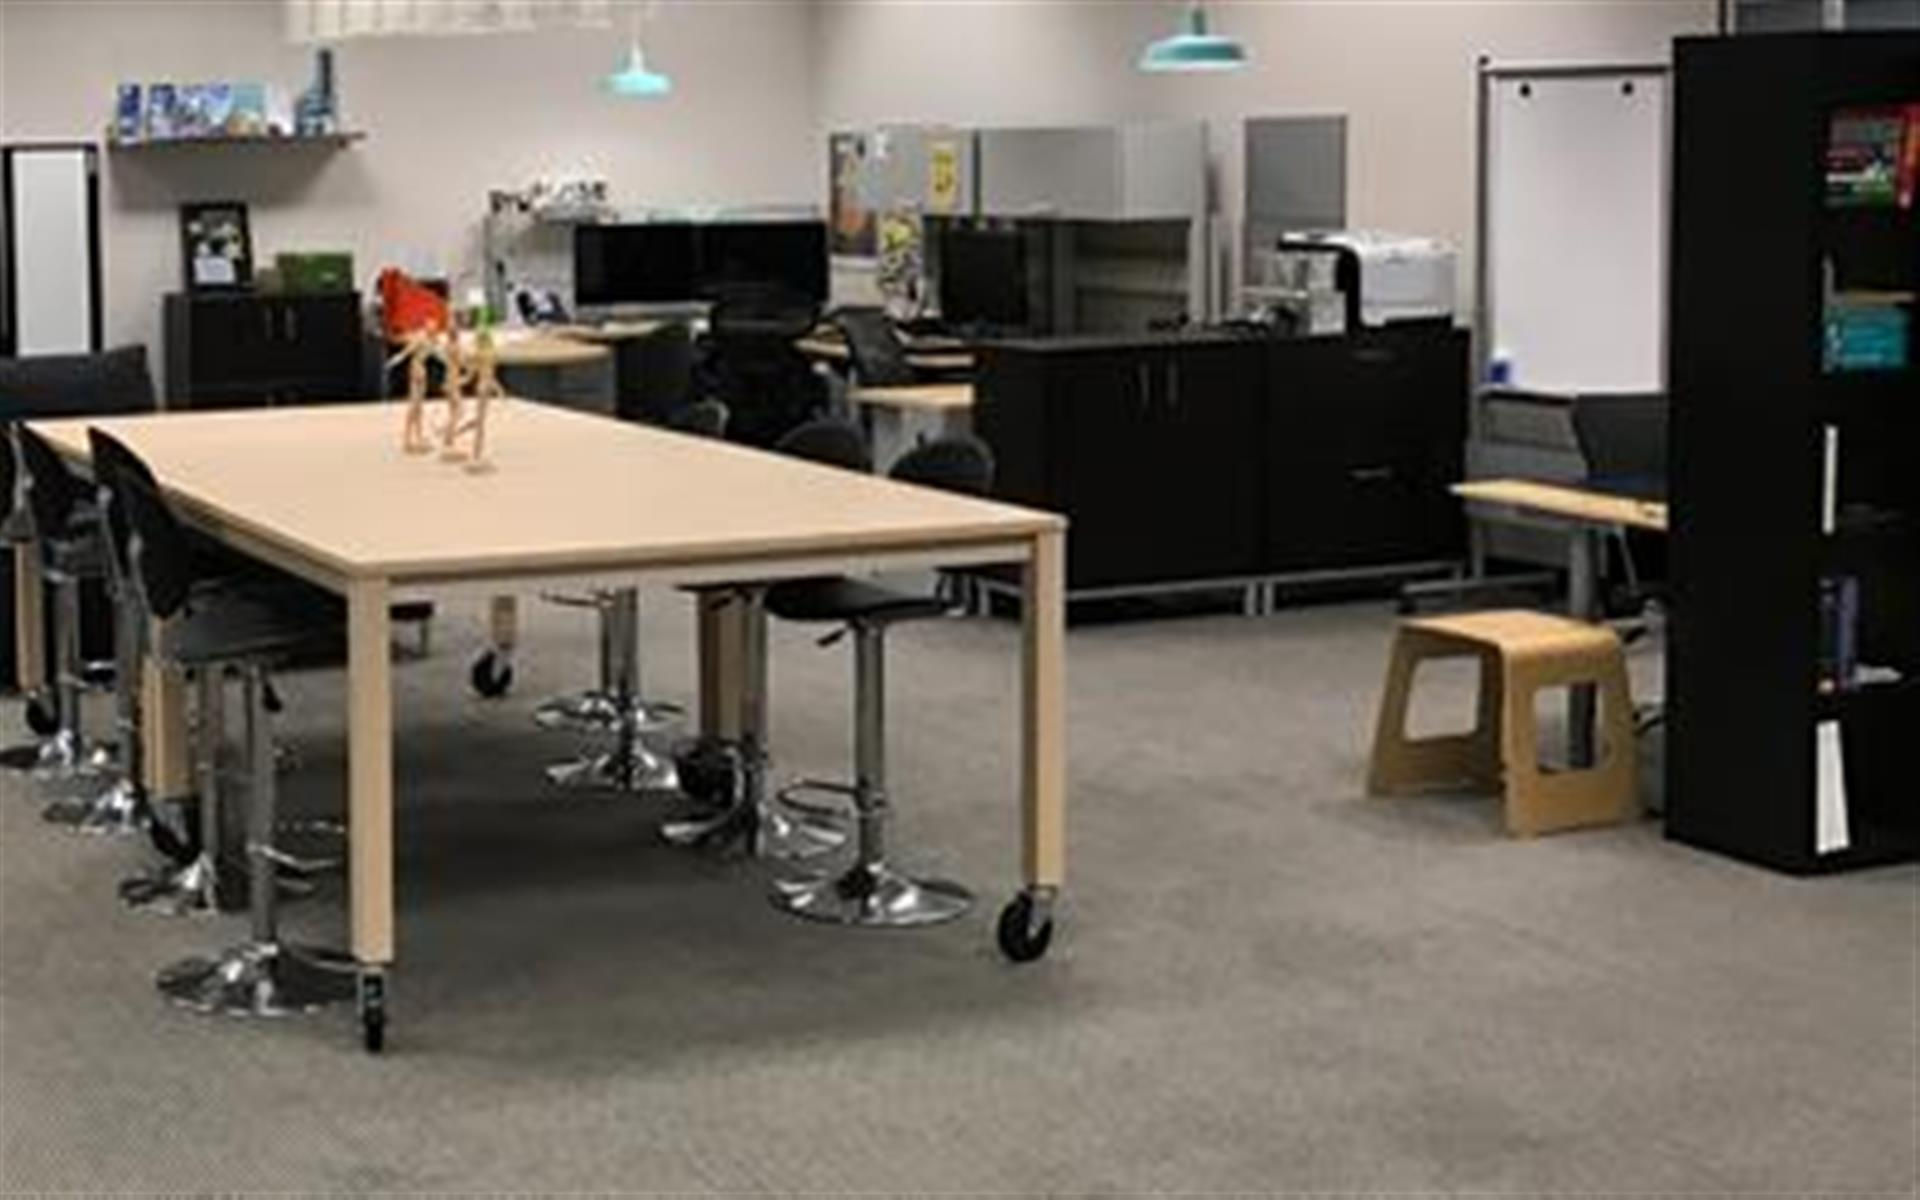 The Office of Silicon Valley - Collaborative Open Space